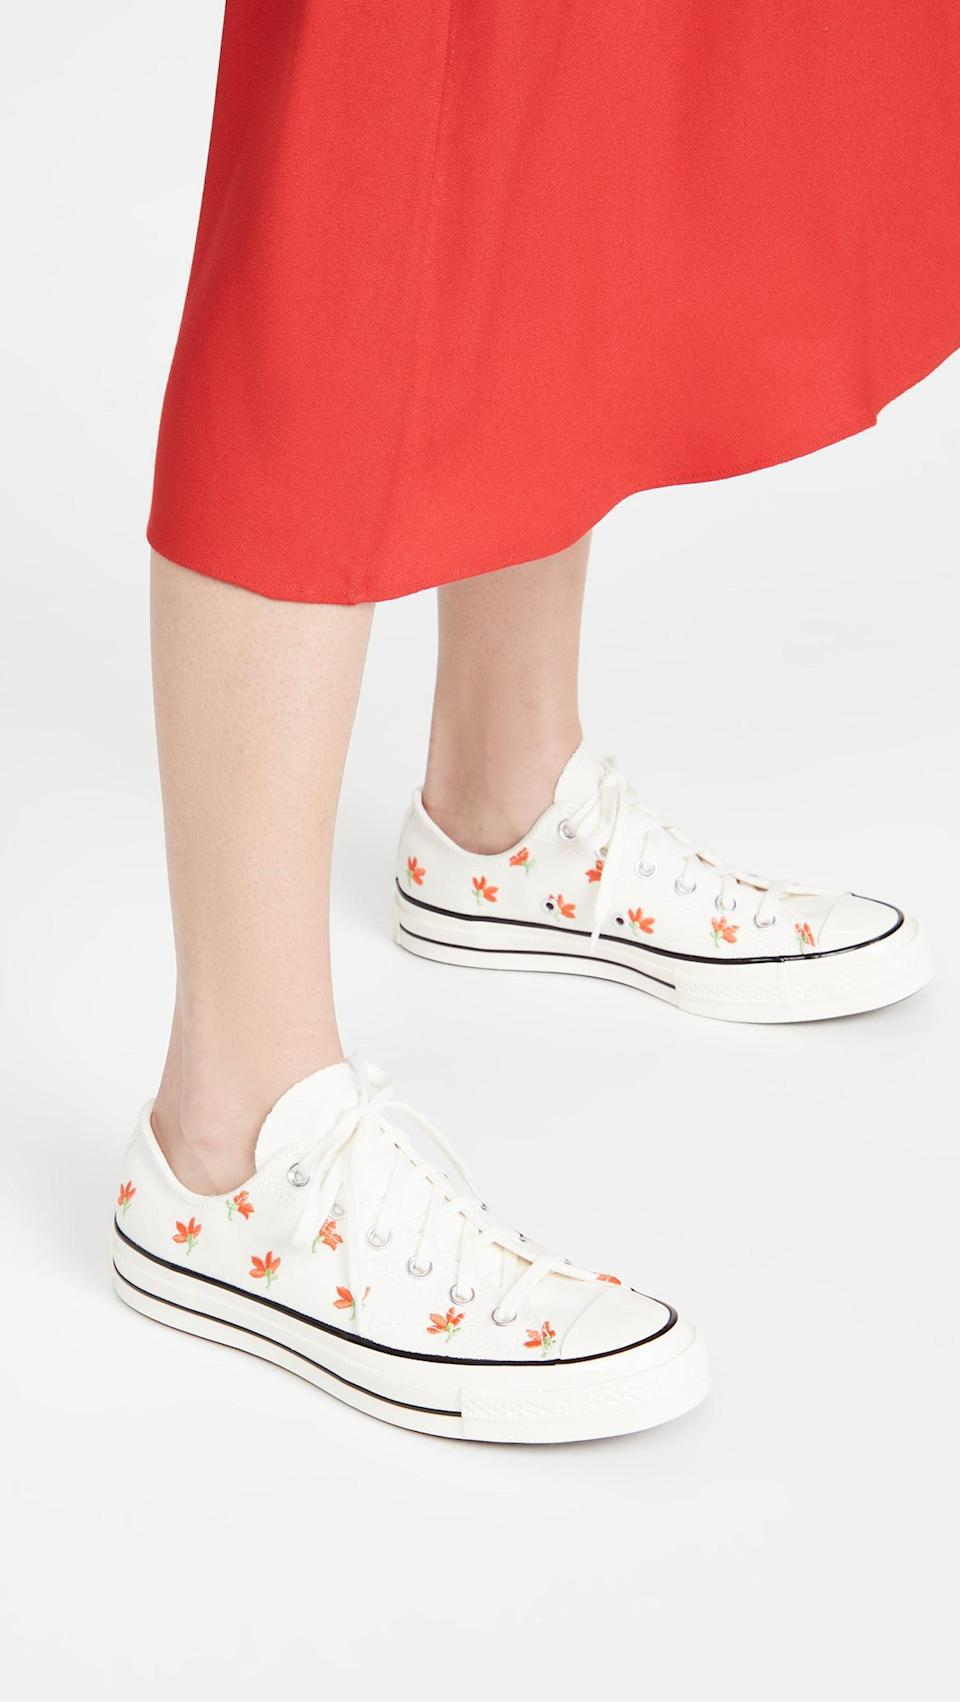 "<p><span>Converse Chuck 70 Embroidered Garden Party Sneakers</span> ($85)</p> <p>""I'm a sucker for florals, so these fun kicks instantly caught my attention. How can you resist the fun springtime vibe?"" - Macy Cate Williams, senior editor, Shop</p>"